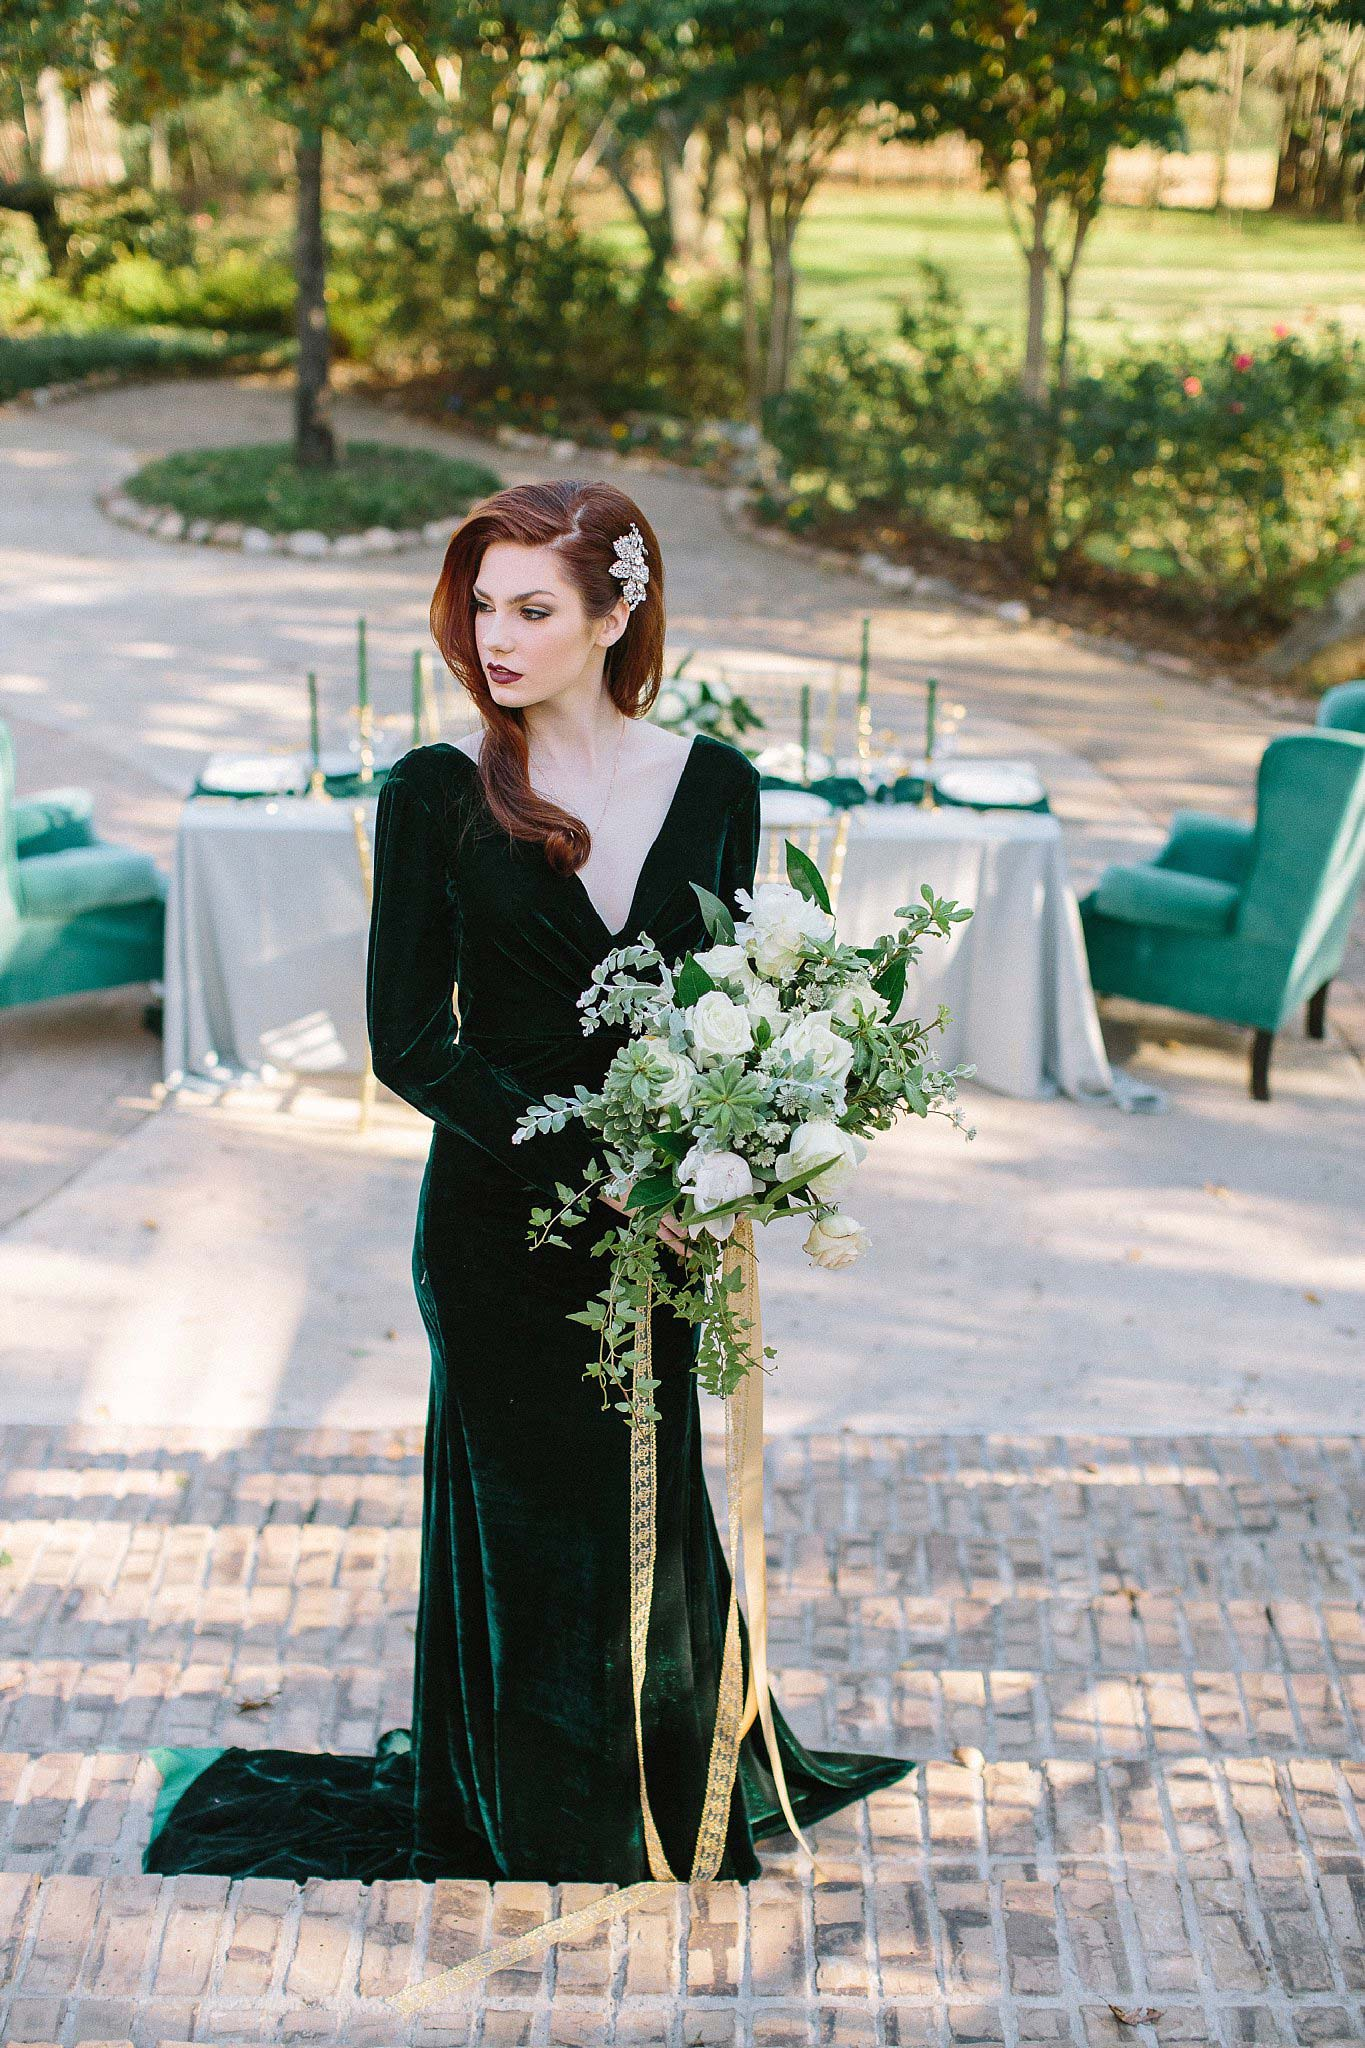 aristide mansfield wedding bridesmaid holding bouquet on stairs with table in background